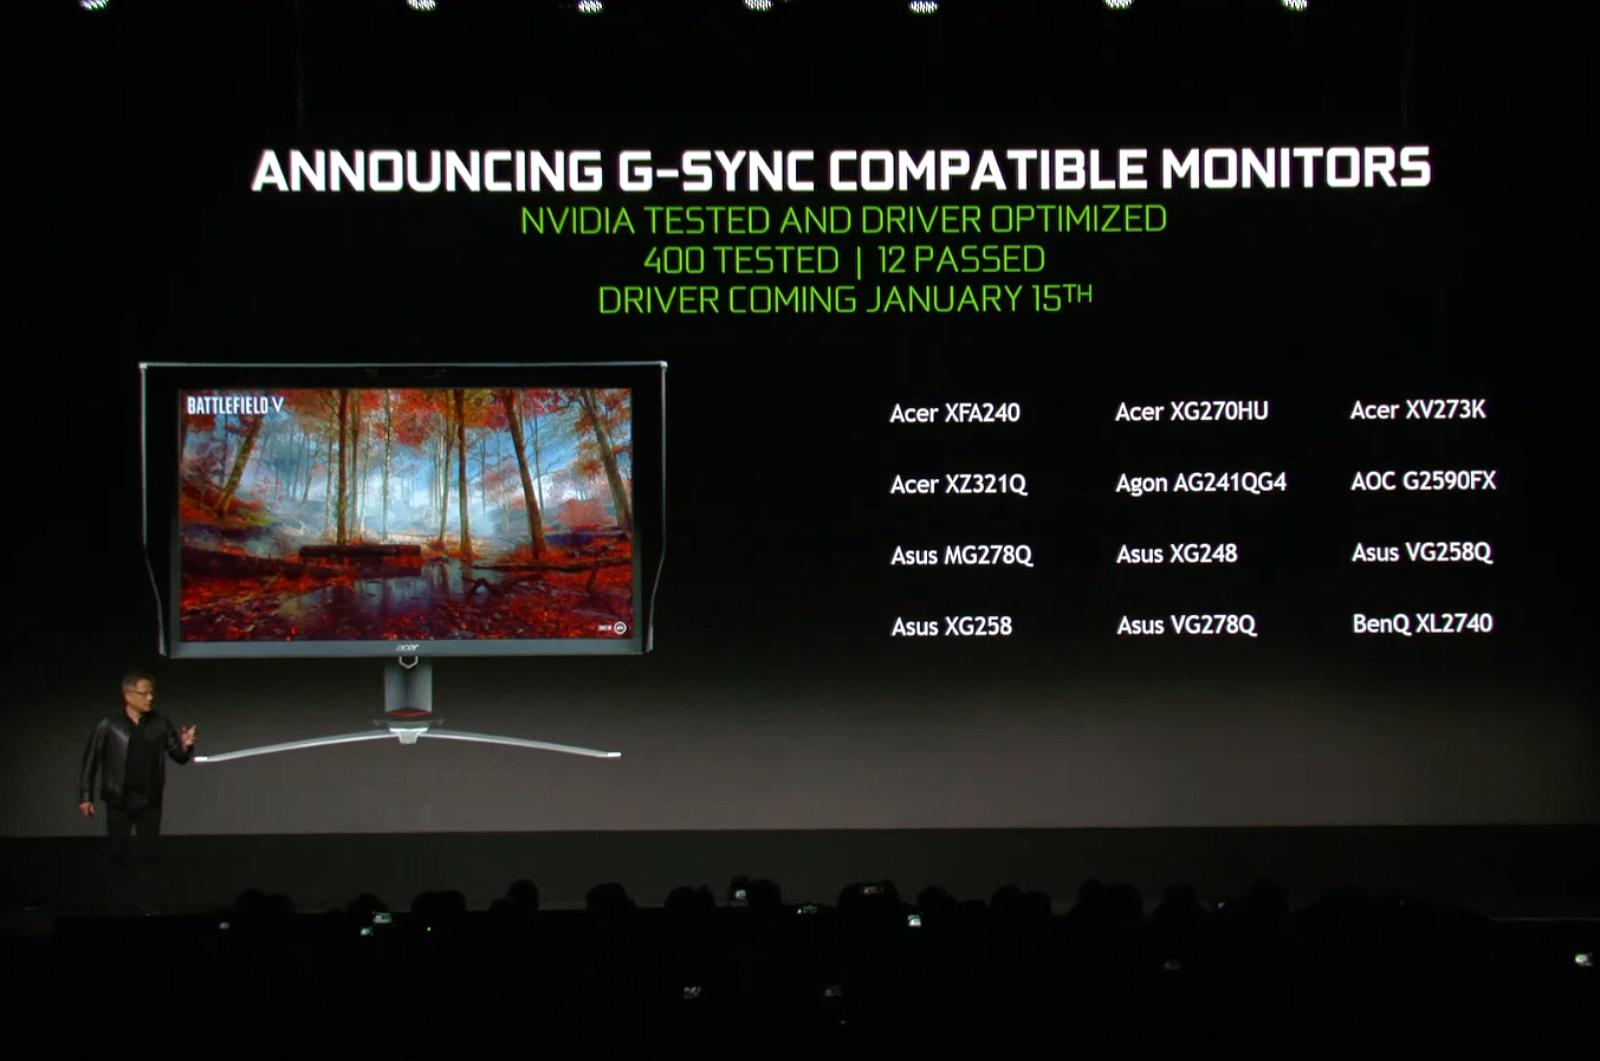 How to enable G-Sync on FreeSync monitor on Windows 10 \u2022 Pureinfotech